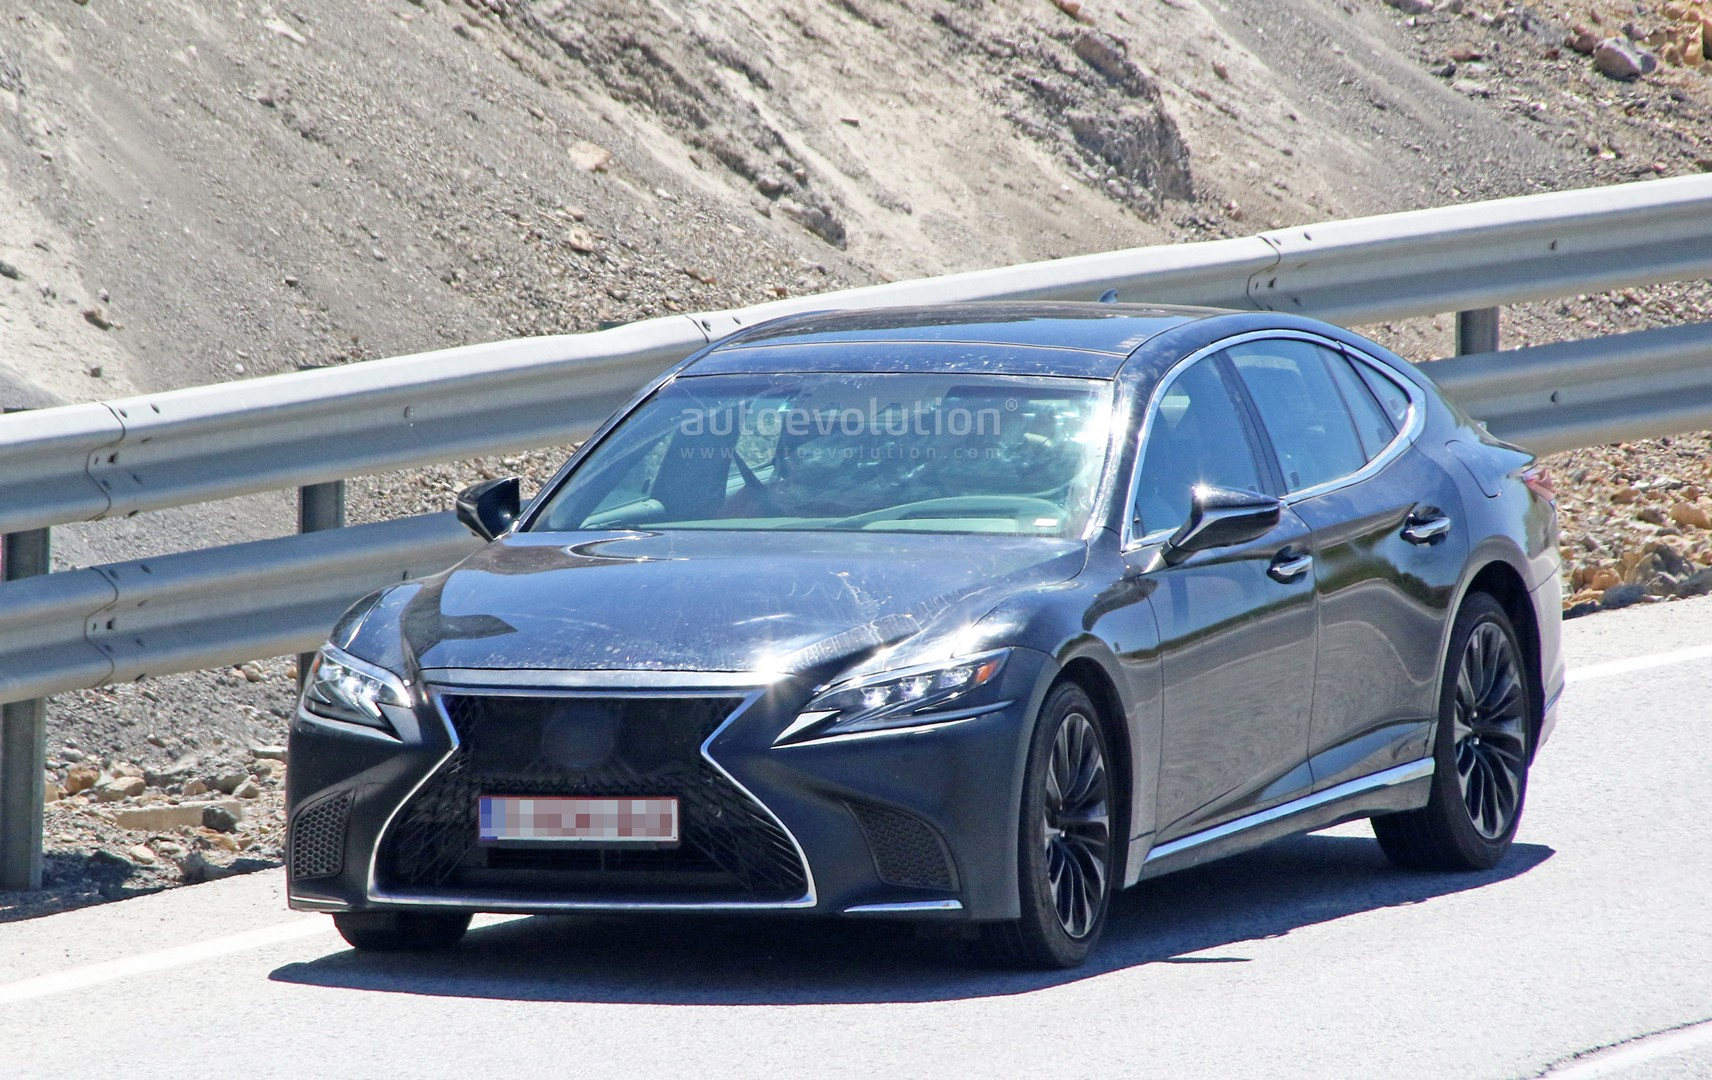 Spyshots: 2019 Lexus LS F Spotted, Could Pack Twin-Turbo V8 - autoevolution